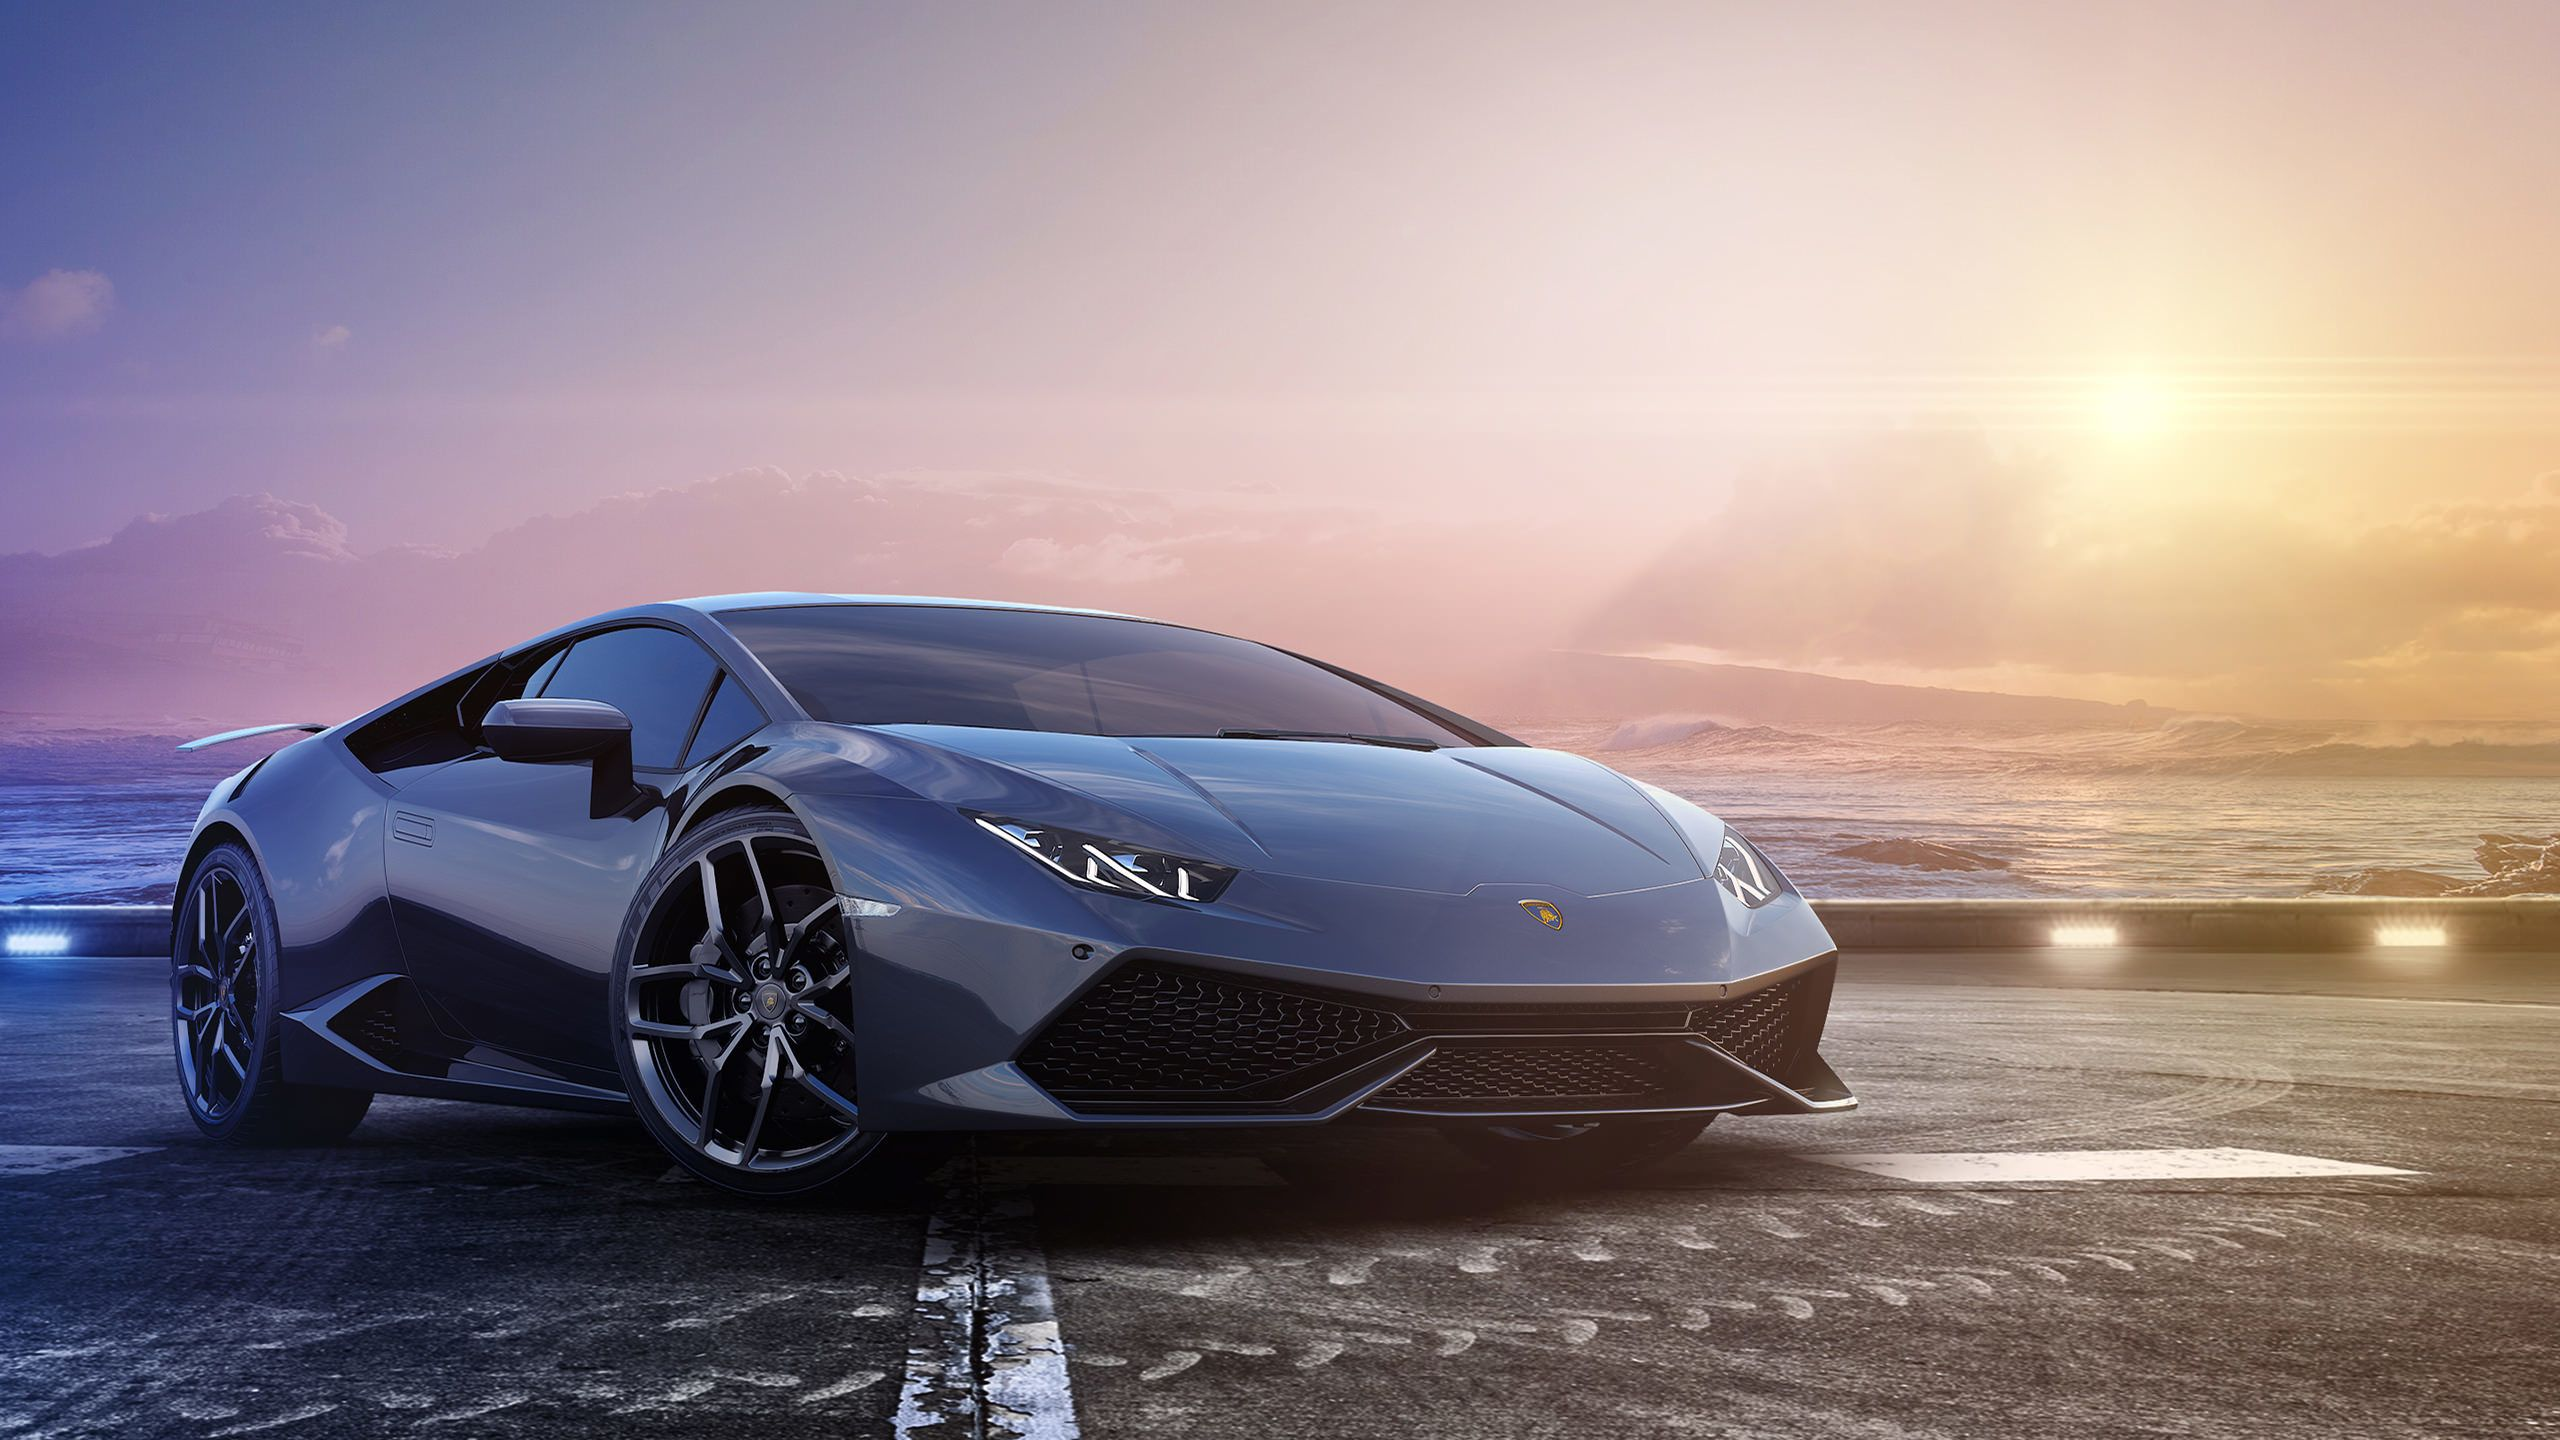 Lamborghini Wallpaper Hd Resolution Vehicles Wallpapers Pinterest Lamborghini Wallpaper And Lamborghini Aventador